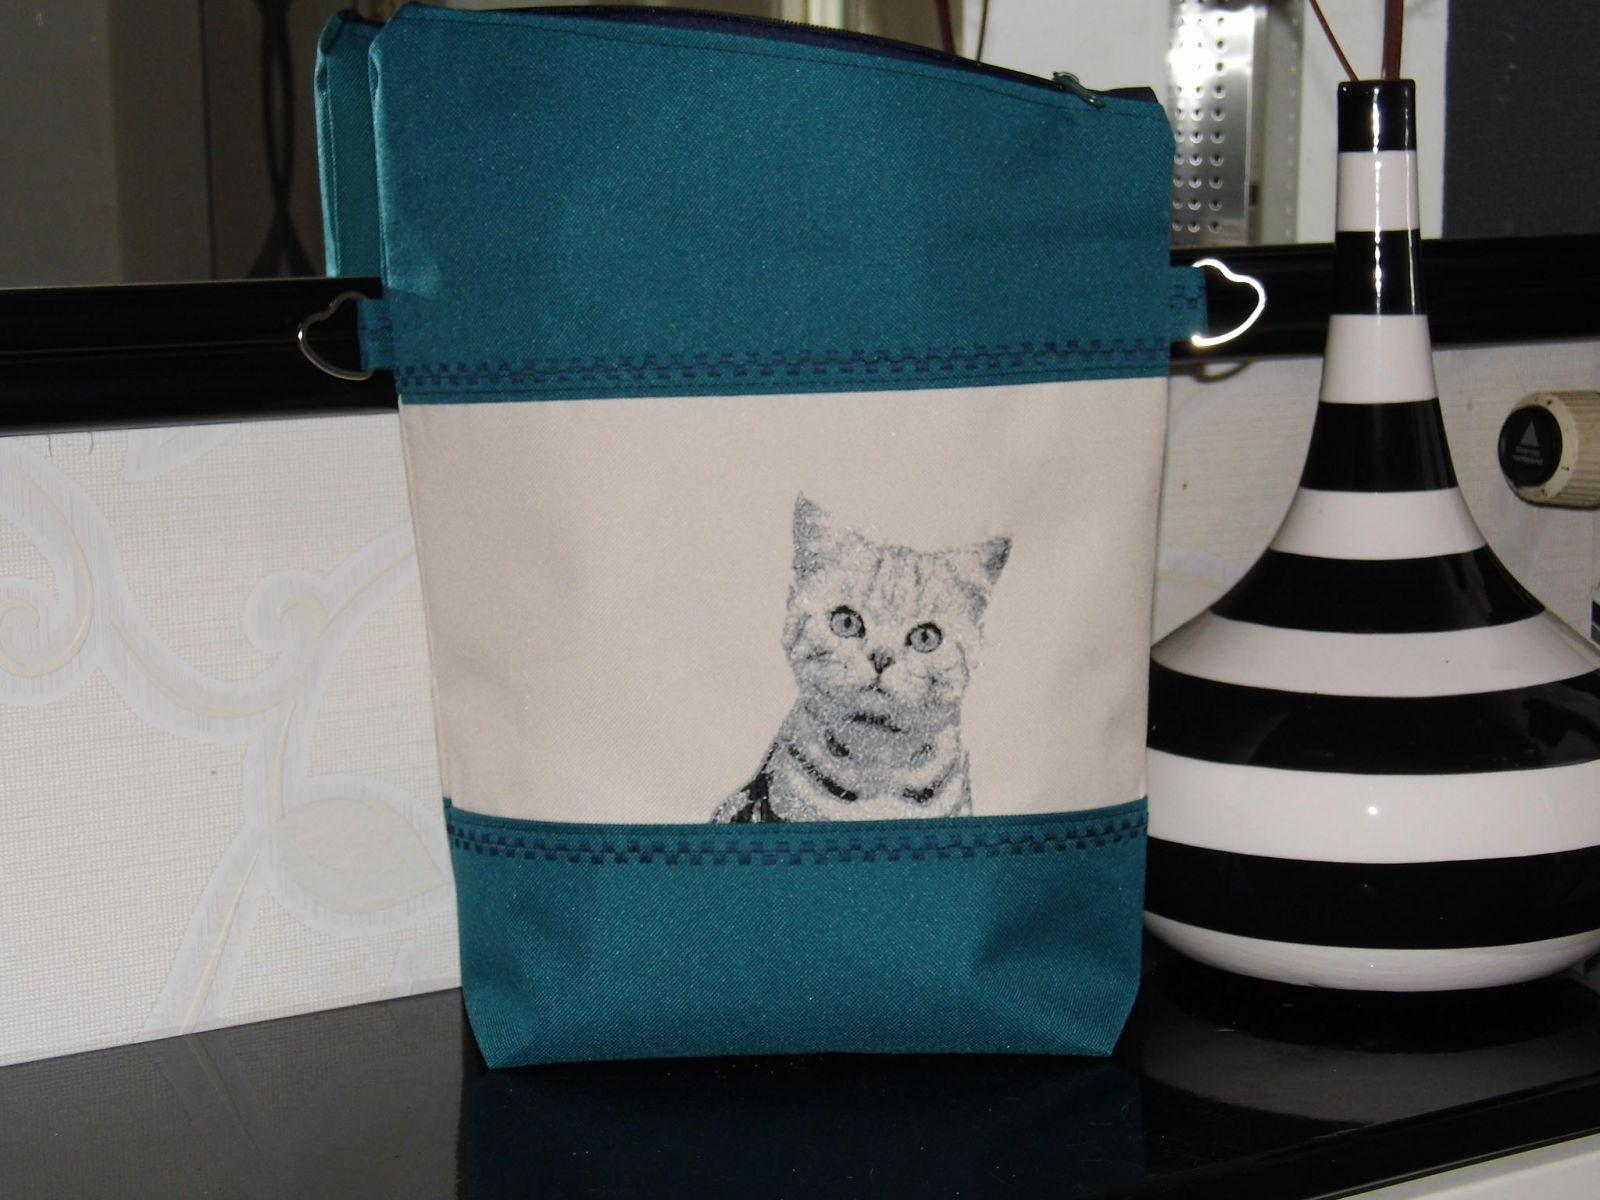 Tote bag with cat photo embroidery design